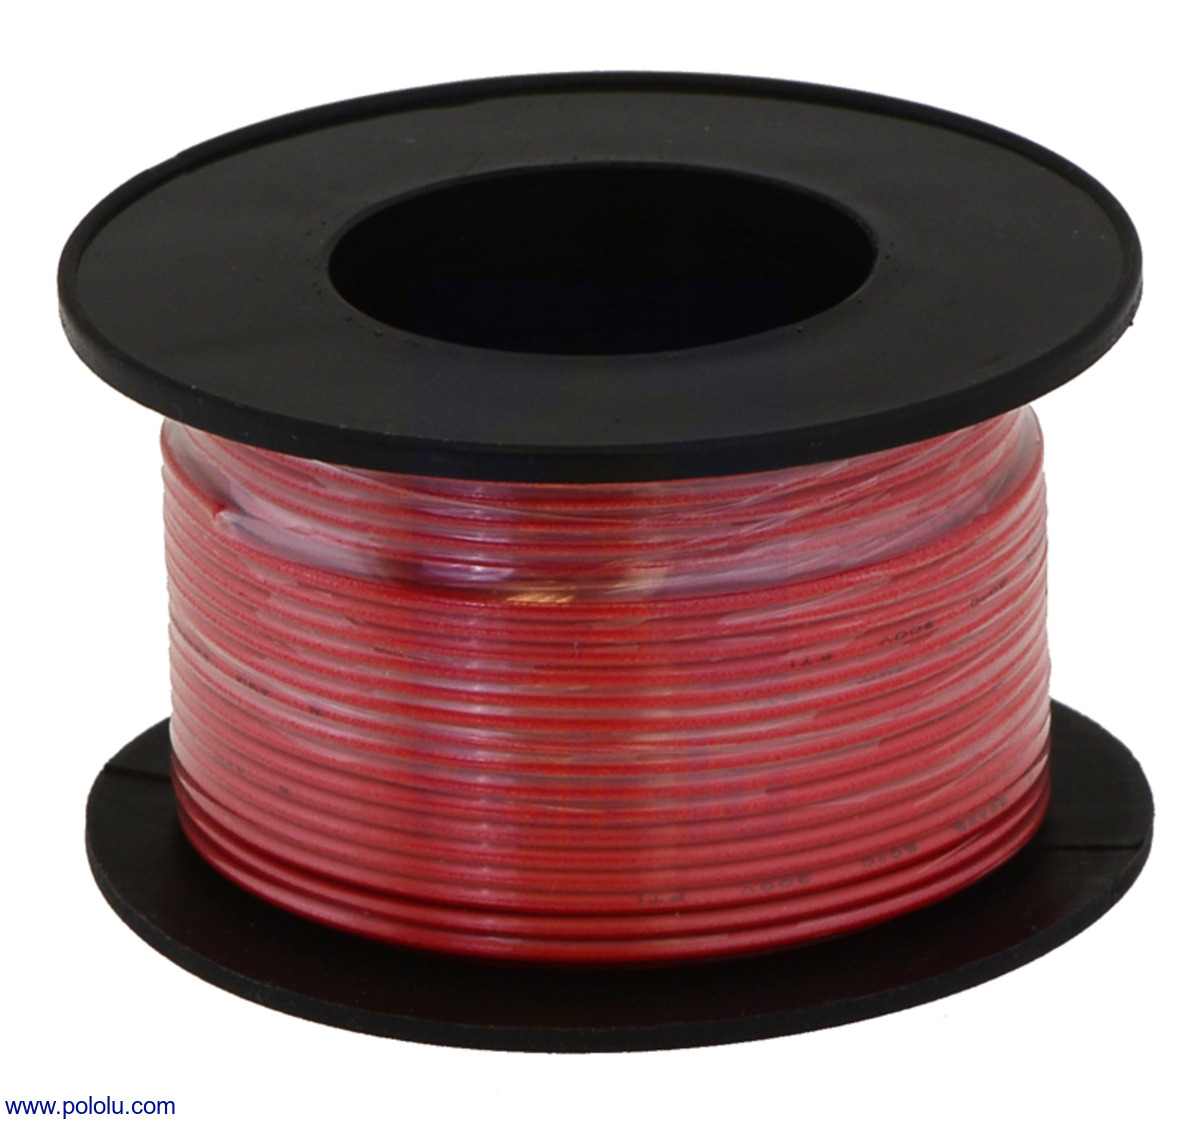 40 gauge stranded wire wire center pololu stranded wire red 20 awg 40 feet rh pololu com stranded wire gauge diameter chart stranded wire gauge diameter chart greentooth Image collections